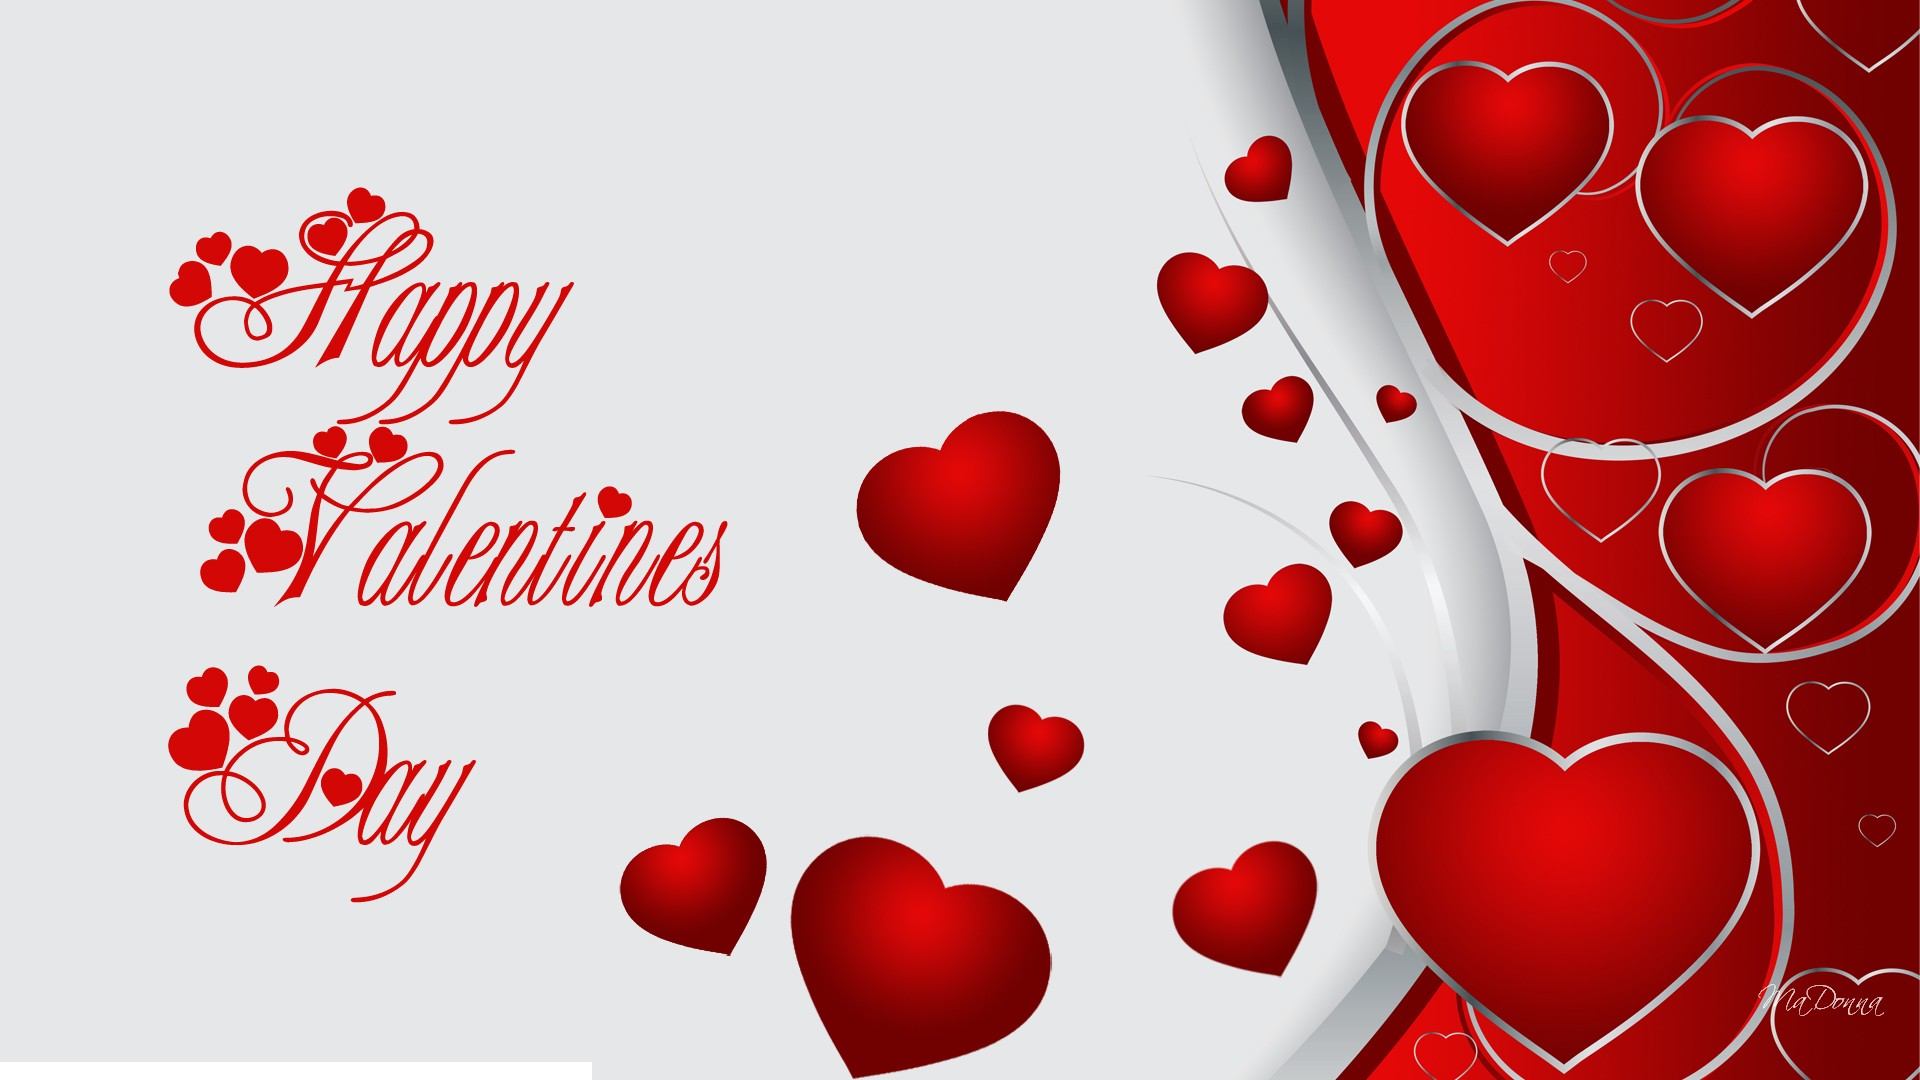 Happy Valentines Day Wallpapers HD